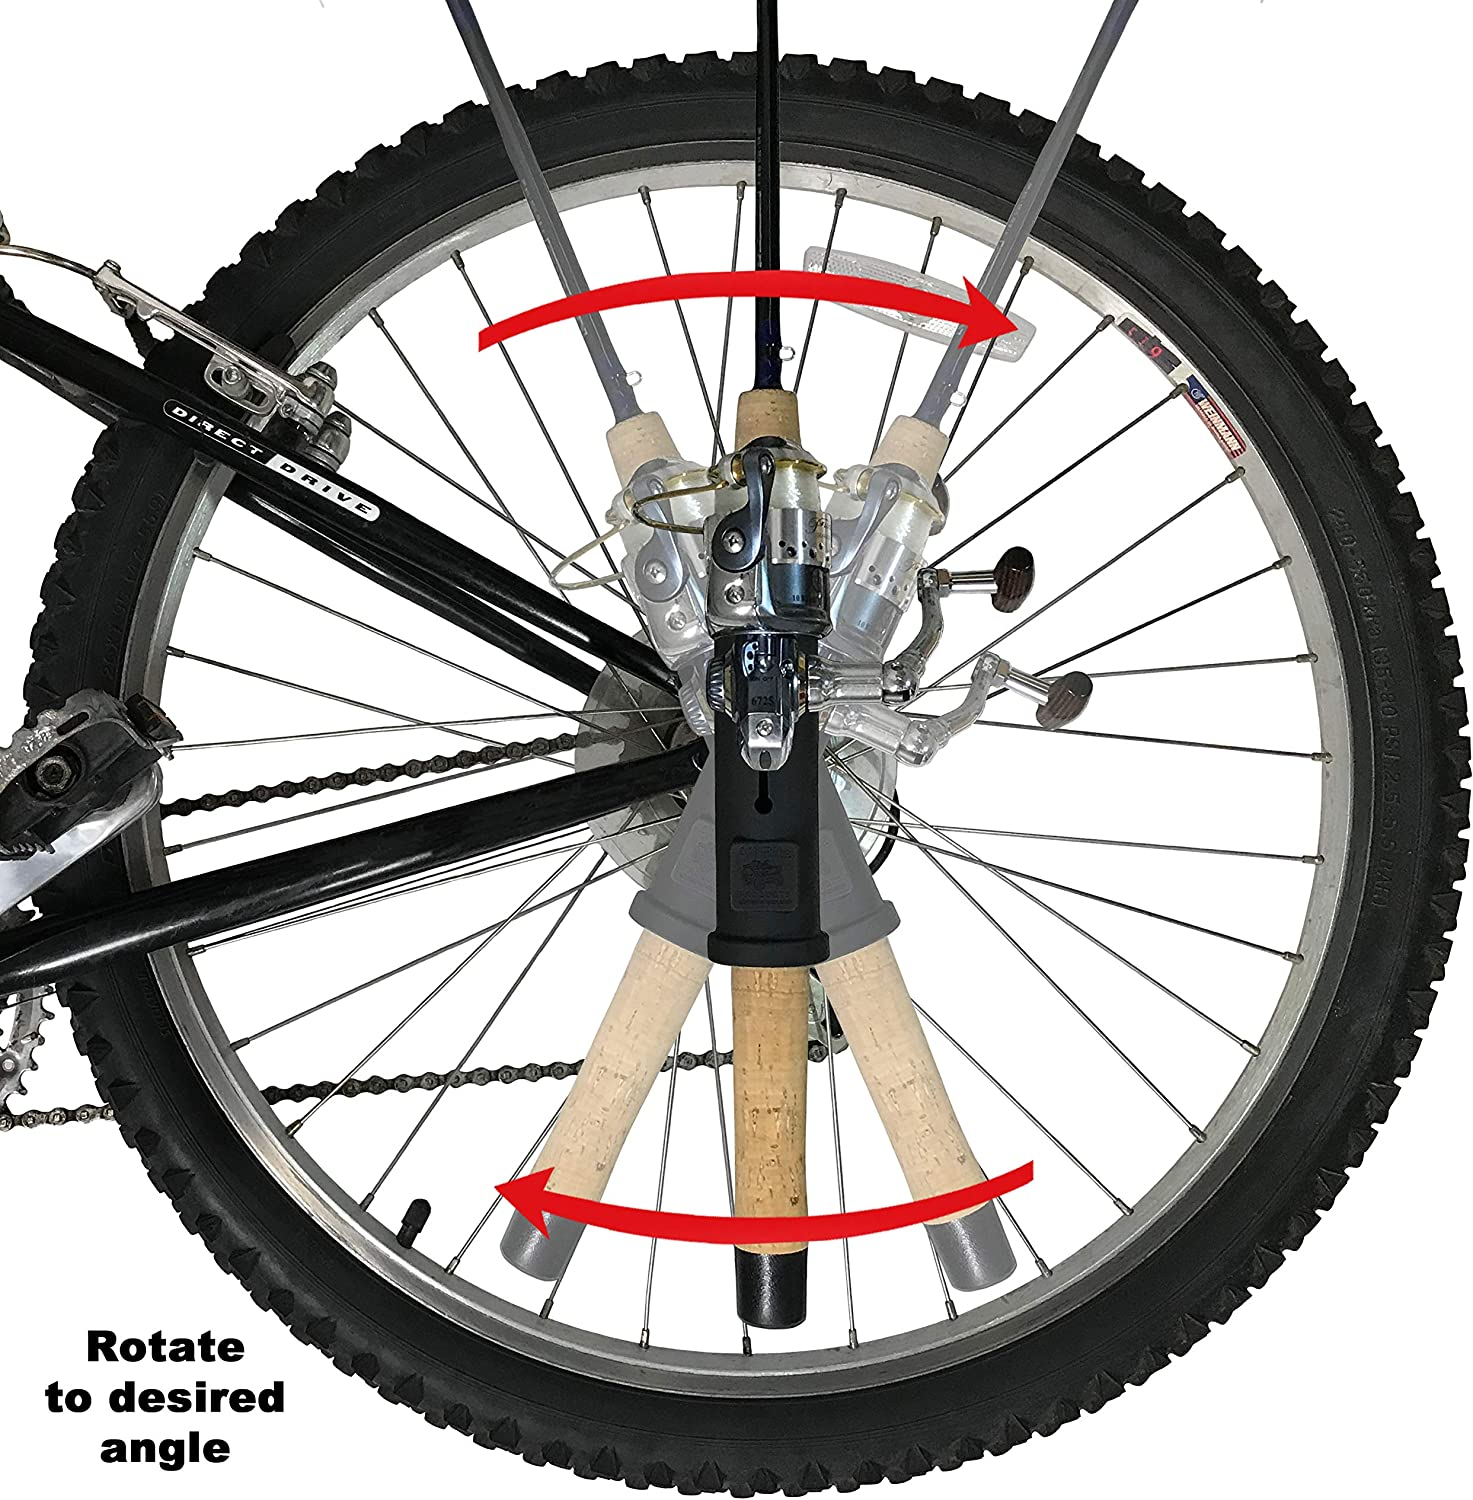 All Rite Products Bike Spinning Rod Holder Model CR1 Carries a Fishing Pole on a Bicycle or an ATV